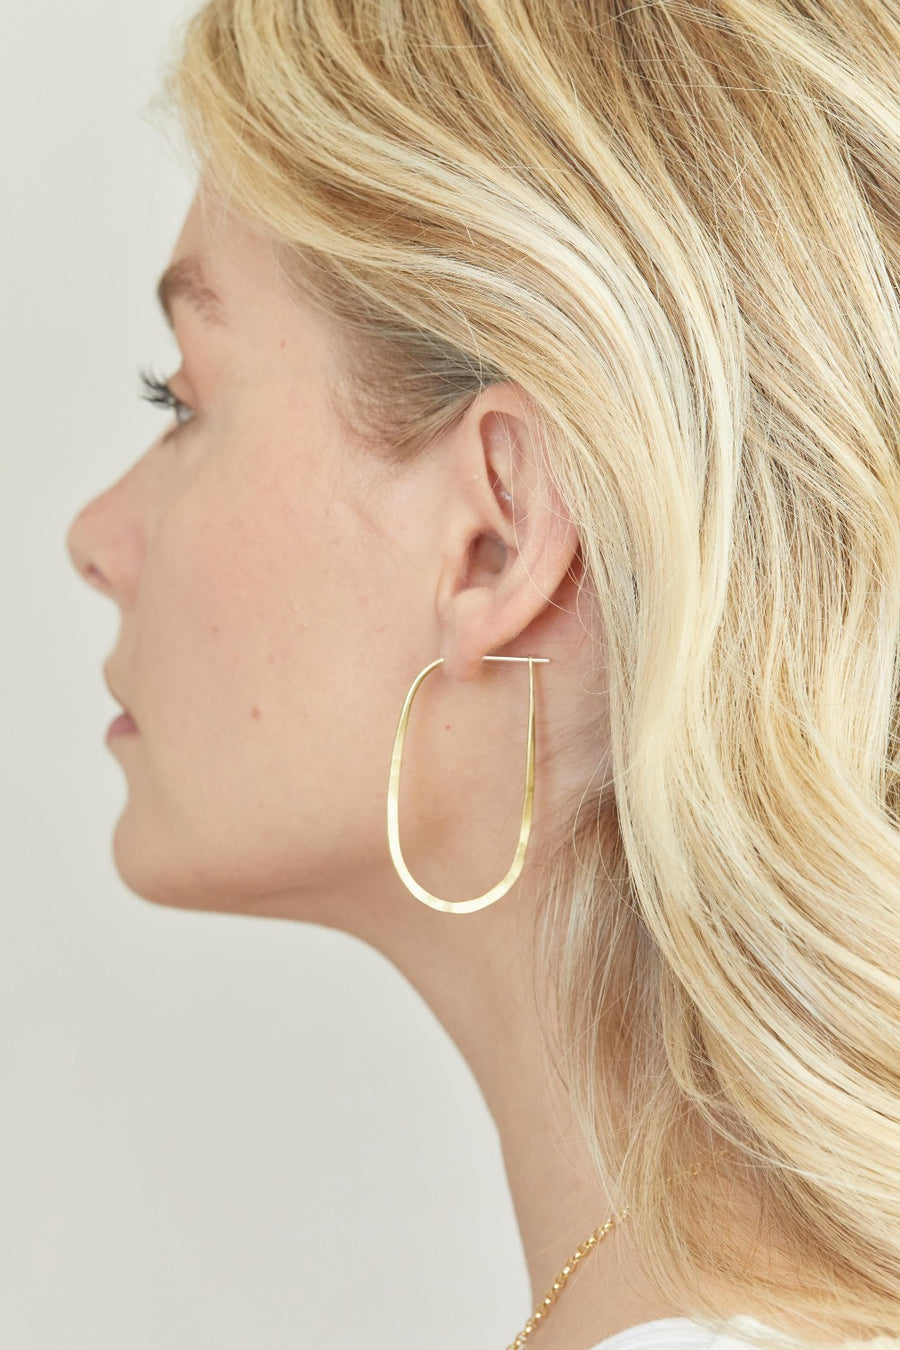 OVAL CLASSIC HOOPS Earrings Small / Brass,Small / Sterling Silver,Large / Brass,Large / Sterling Silver Marisa Mason Jewelry